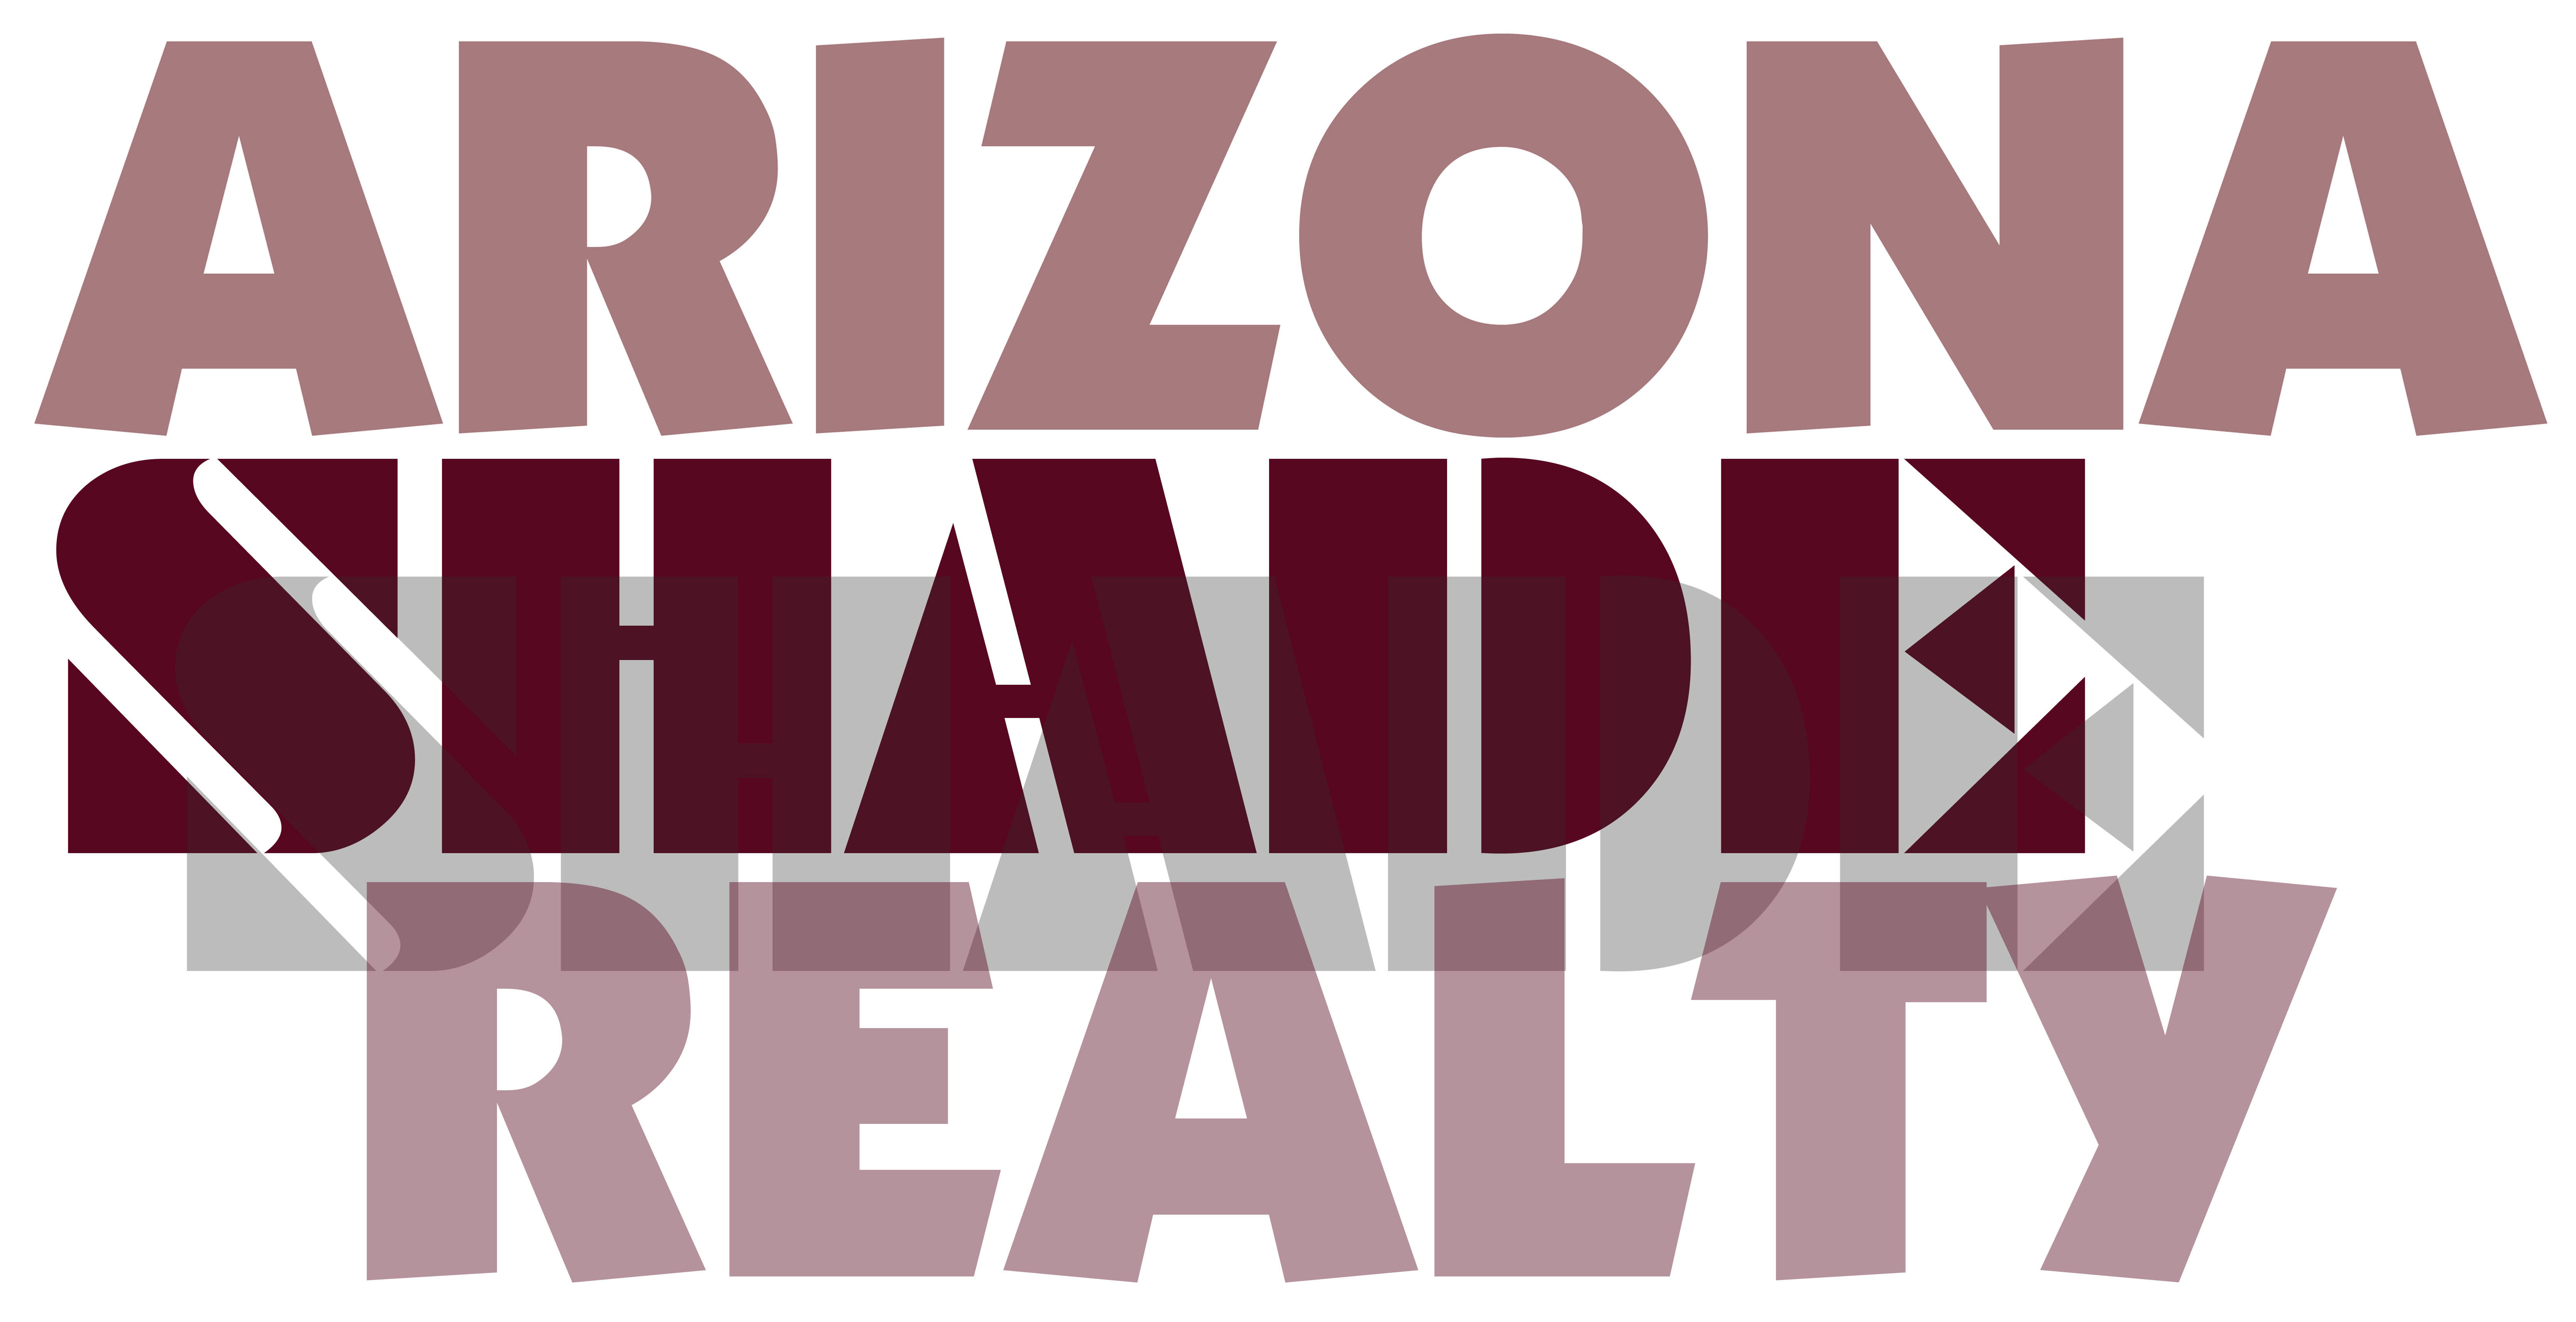 Arizona Shade Realty